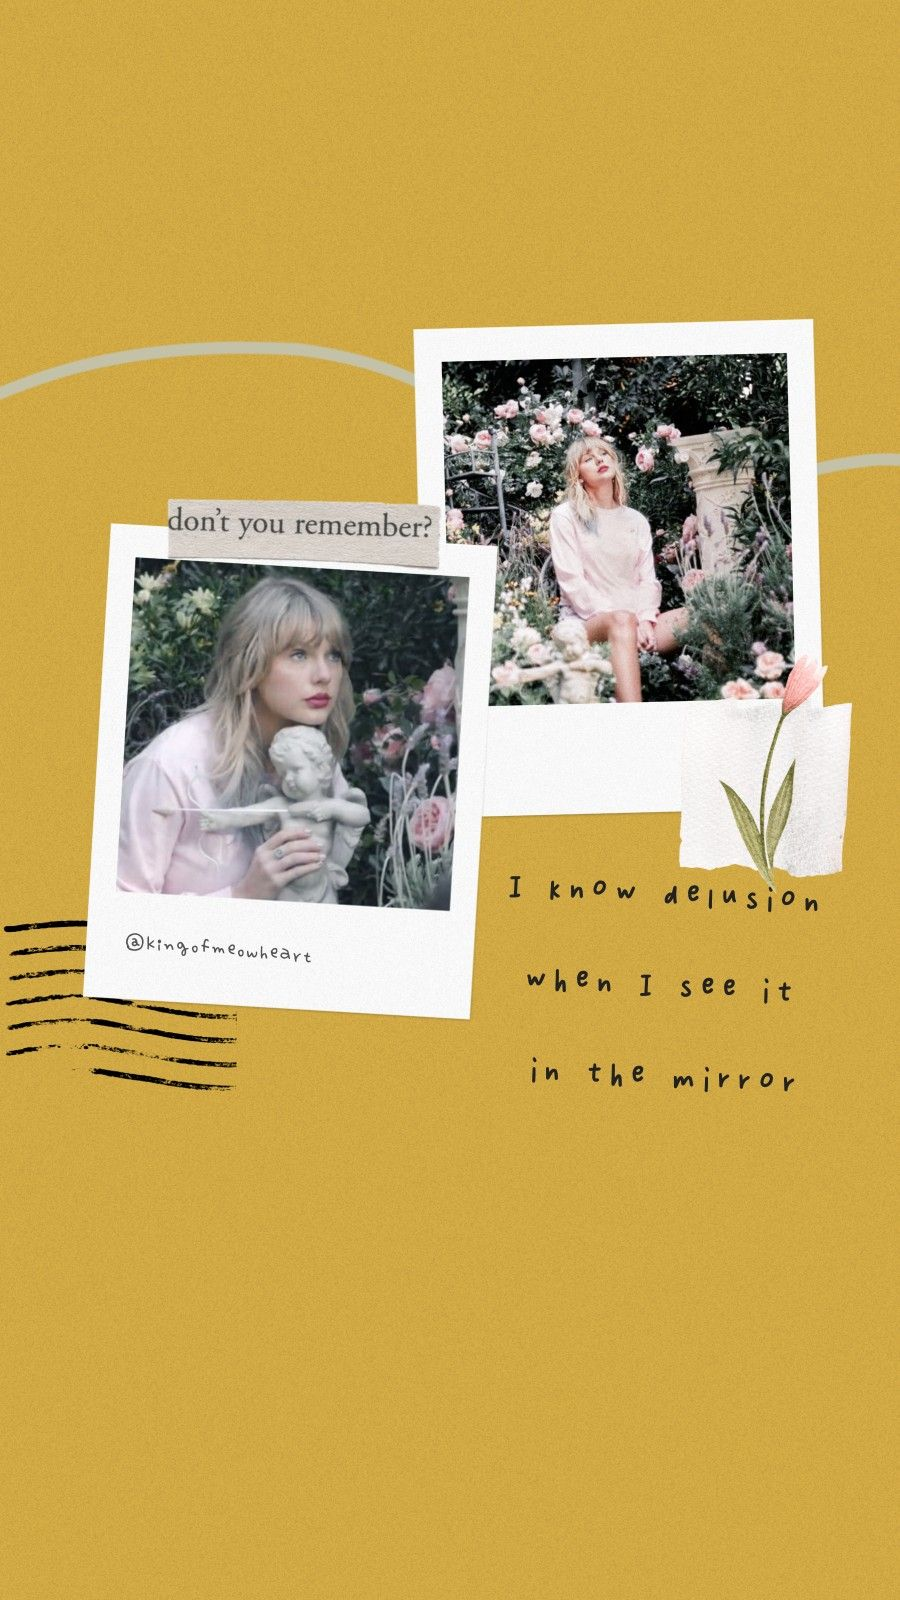 Follow Me For More Taylor Swift Soon You Ll Get Better Sygb